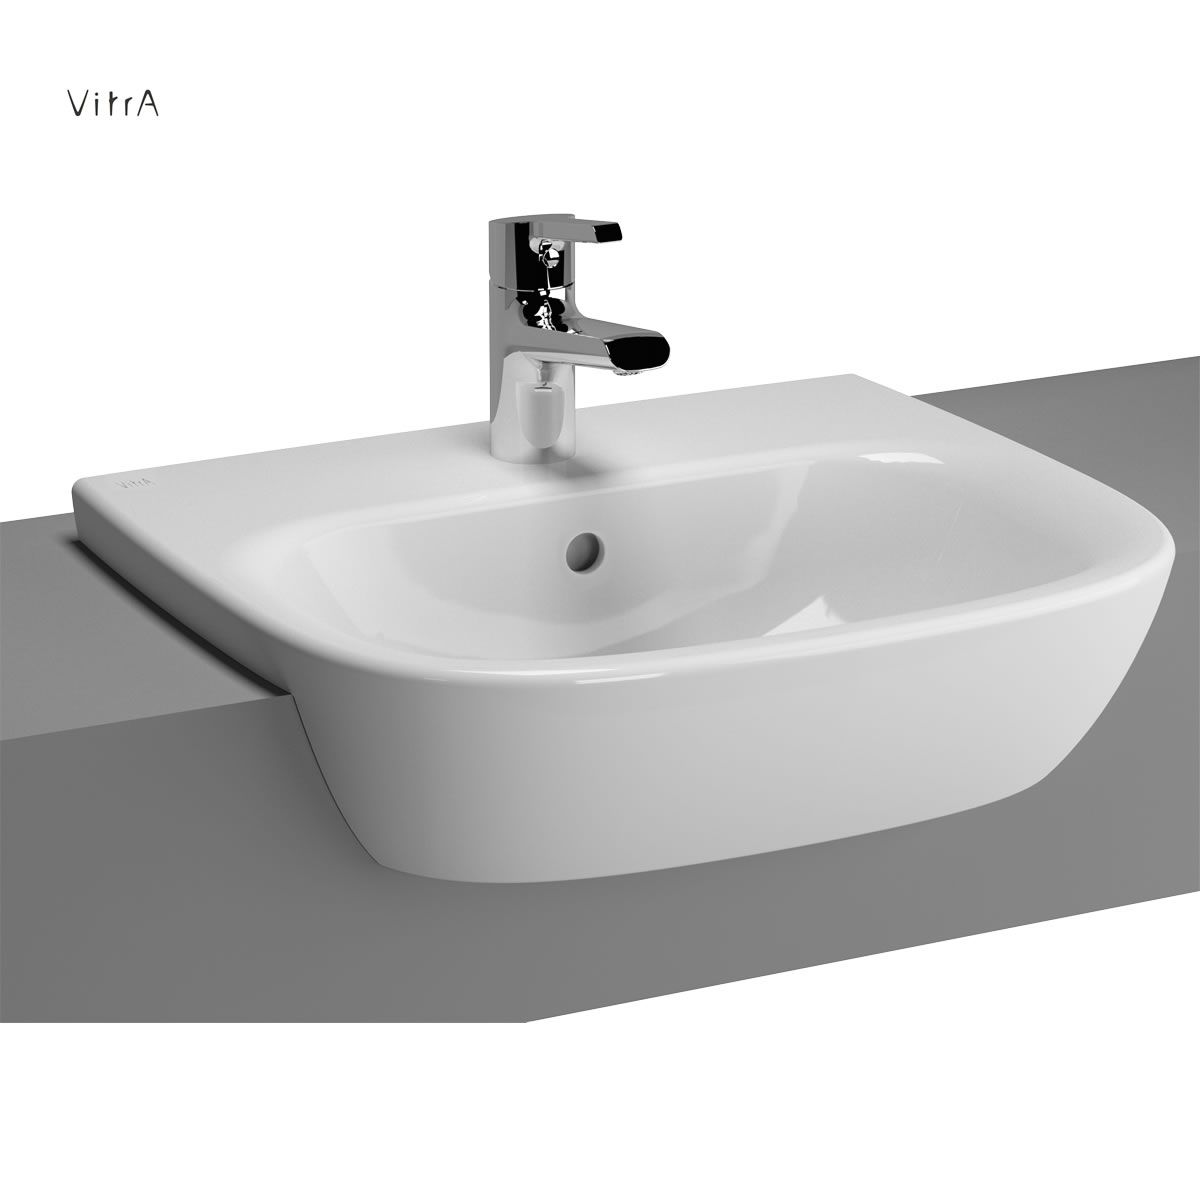 Vitra Zentrum Semi Recessed Washbasin